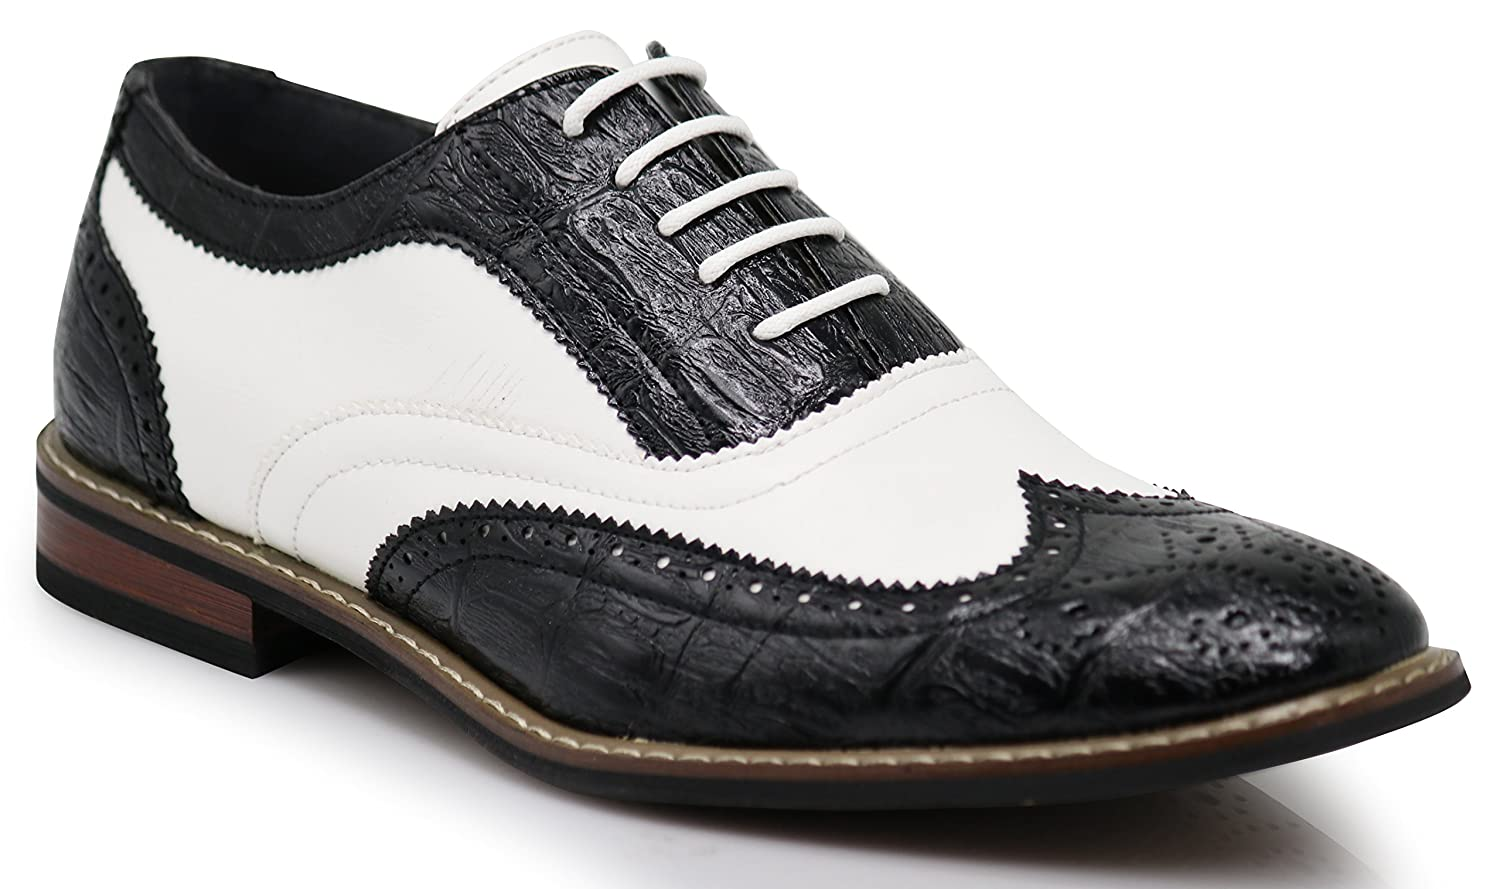 1950s Men's Clothing Mens Dress Oxfords Shoes Italy Modern Designer Wingtip Captoe 2 Tone Lace up Shoes $31.98 AT vintagedancer.com